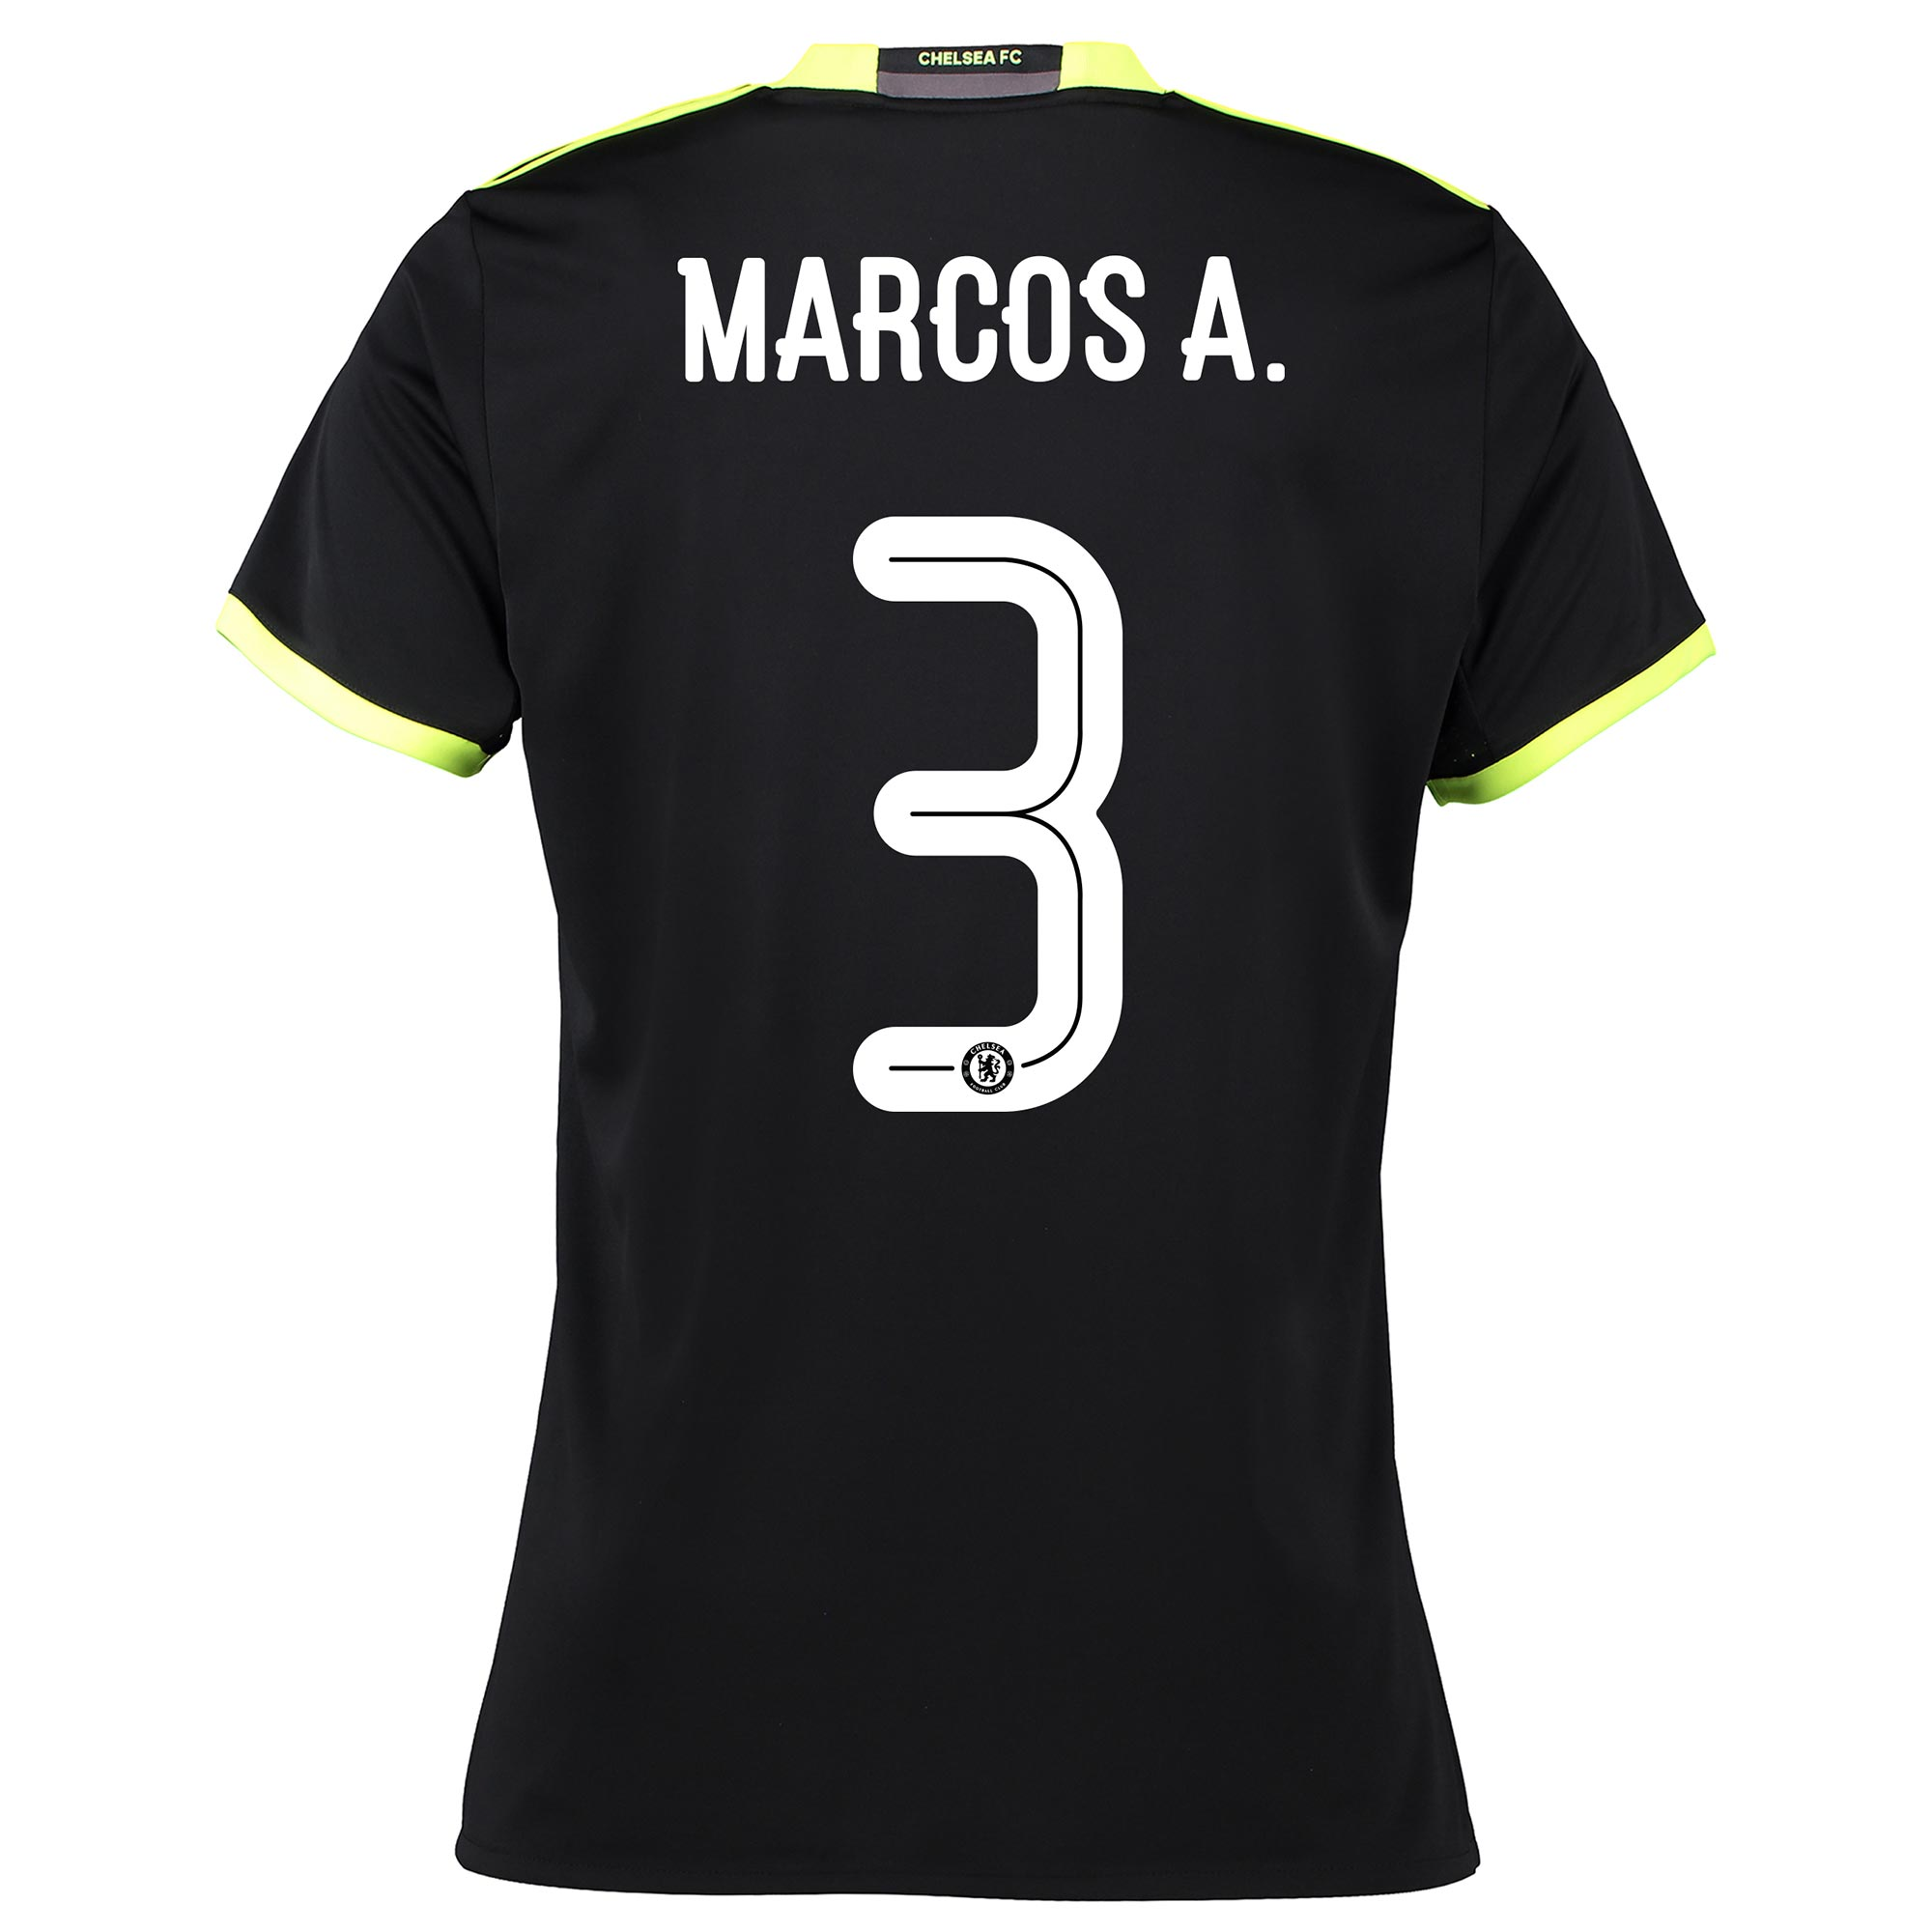 Chelsea Linear Away Shirt 16-17 - Womens with Marcos A. 3 printing